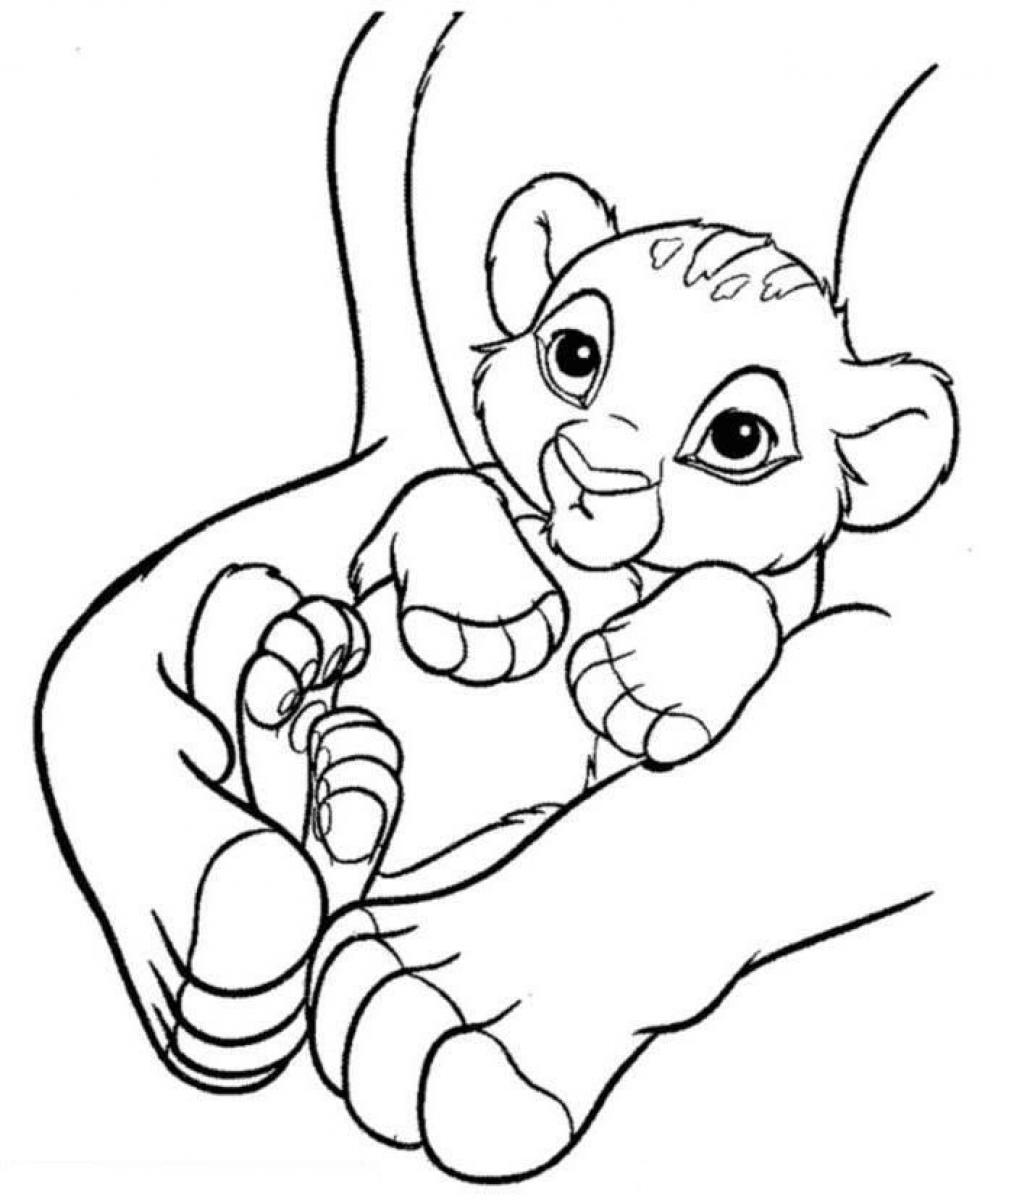 1014x1200 Baby Simba In Hands Free Coloring Page Animals, Disney, Kids